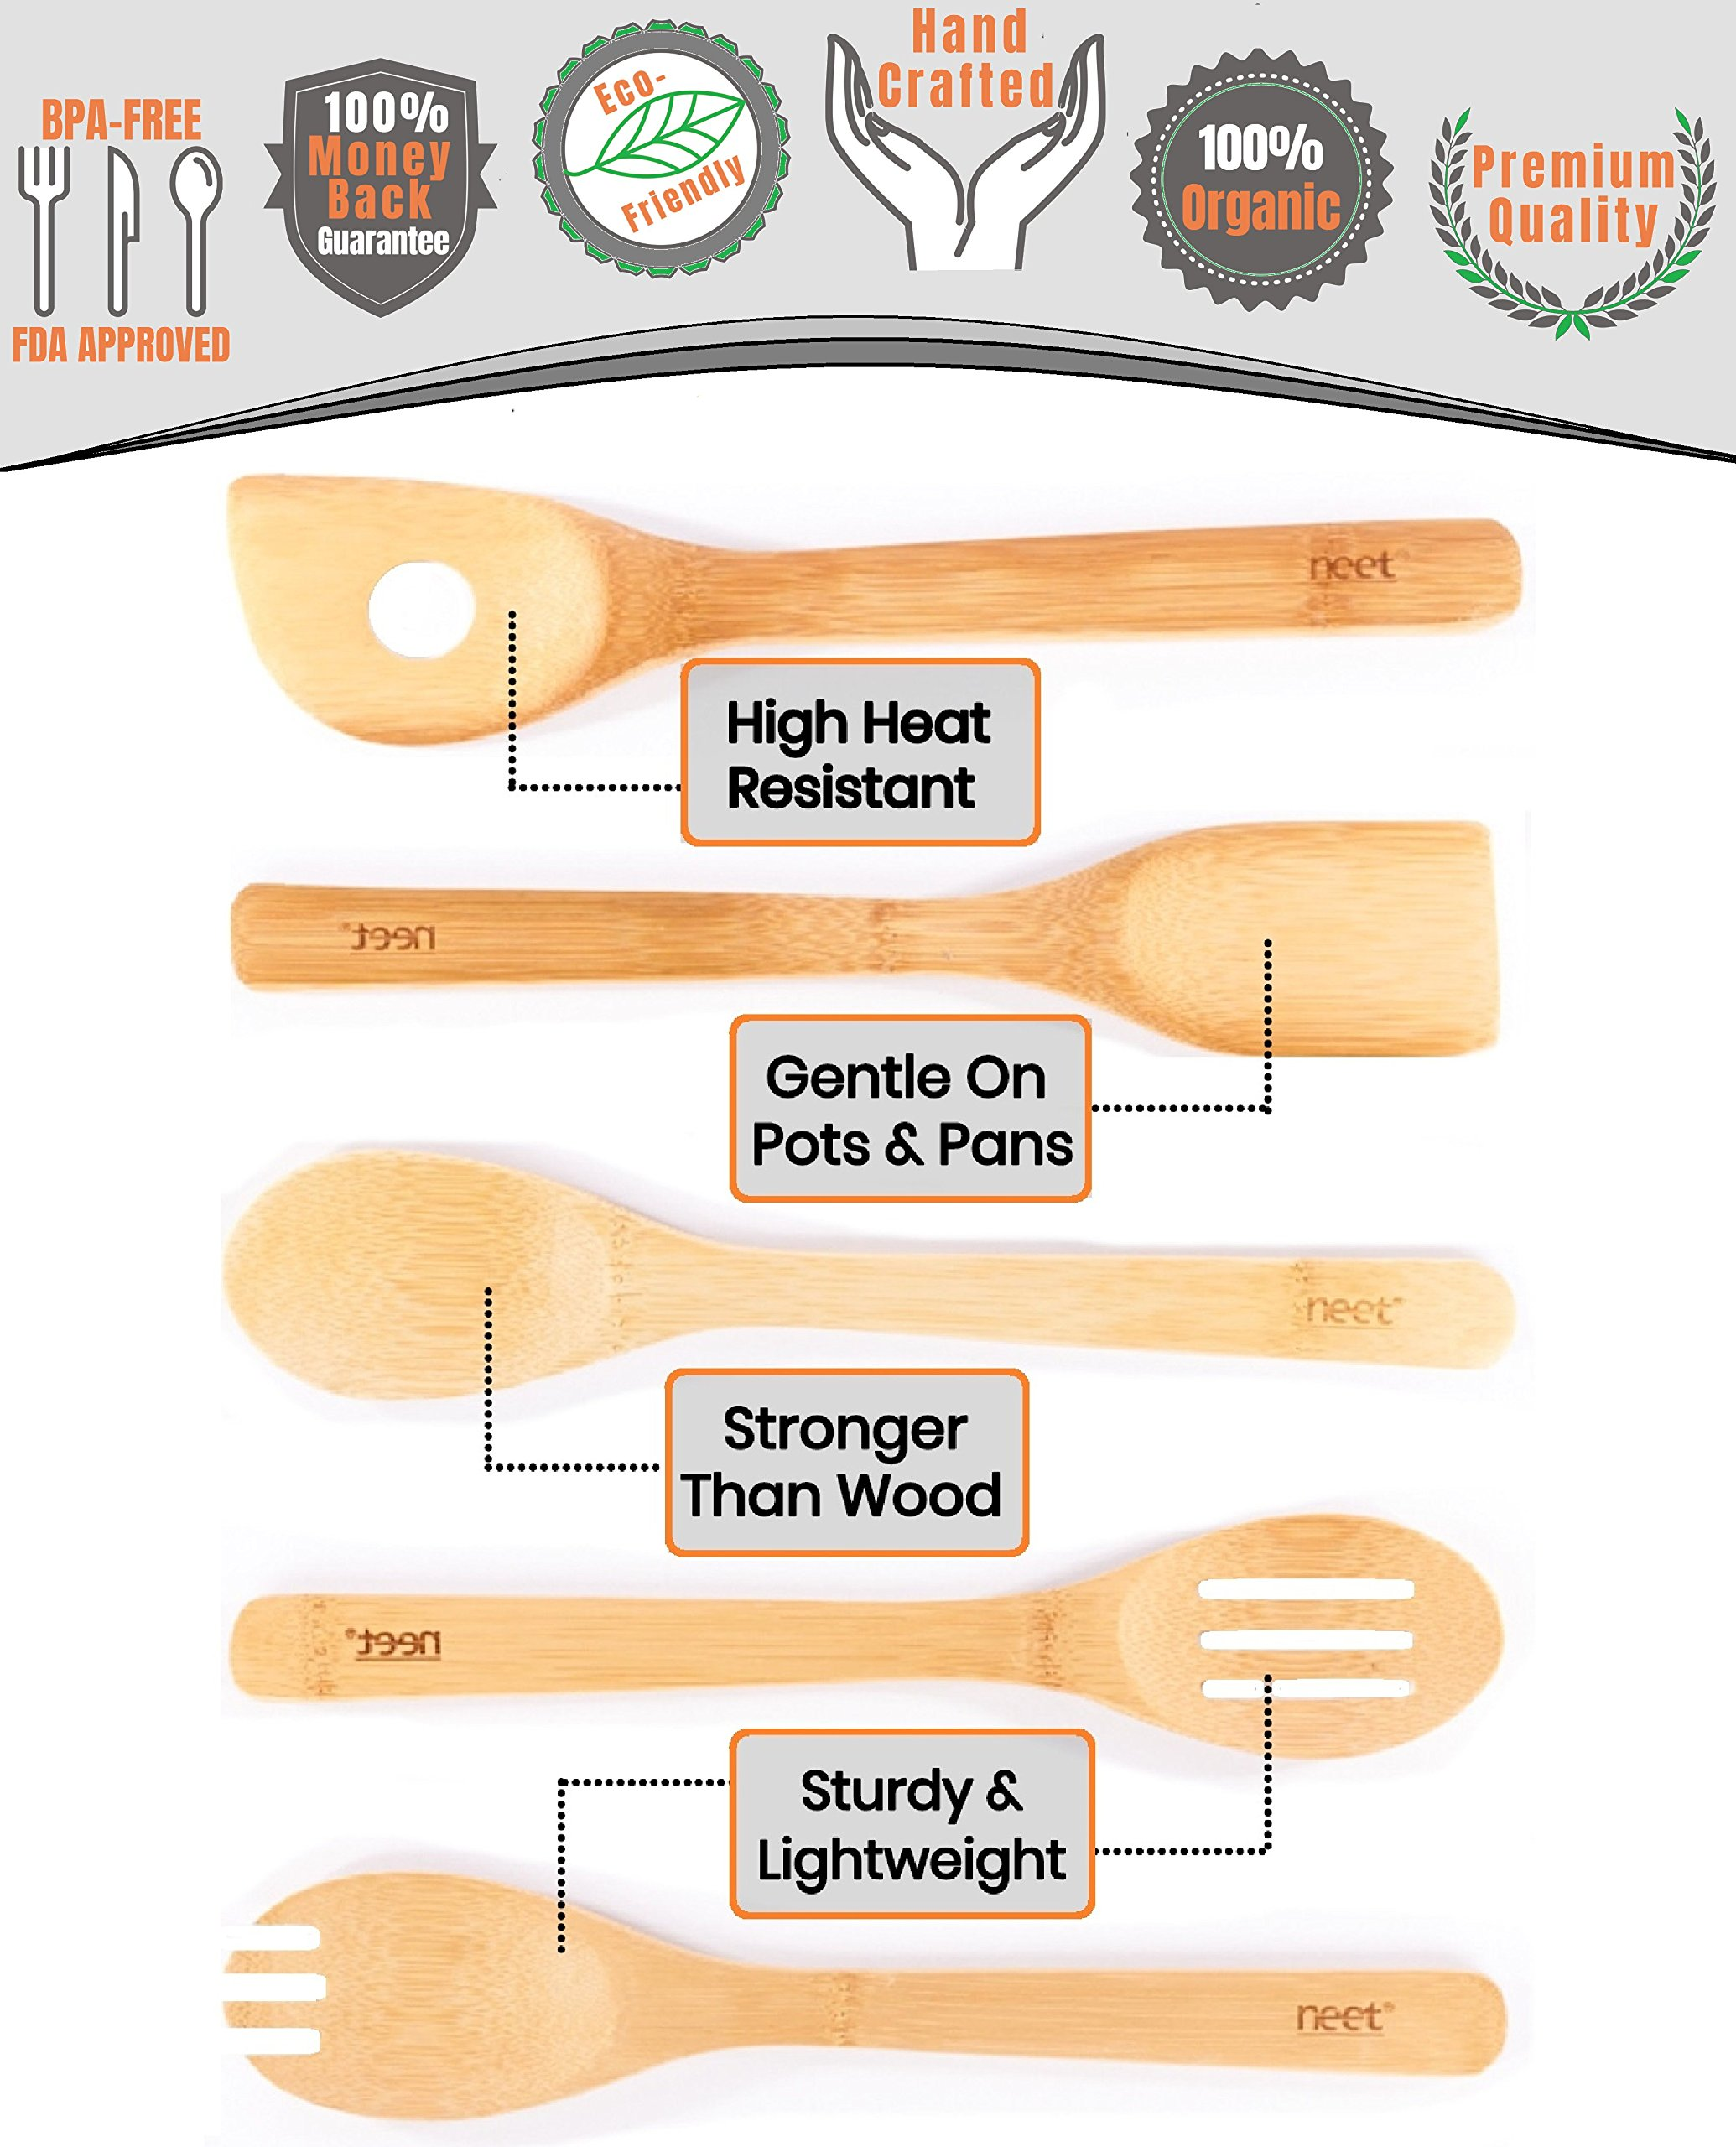 Organic Bamboo Cooking & Serving Utensil Set By Neet - 6 Piece Set | Spoon & Spatula Mix | Utensil Holder Organizer | Non Stick Wooden Kitchen Gadgets | Great Gift For Chefs & Foodies by Neet (Image #5)